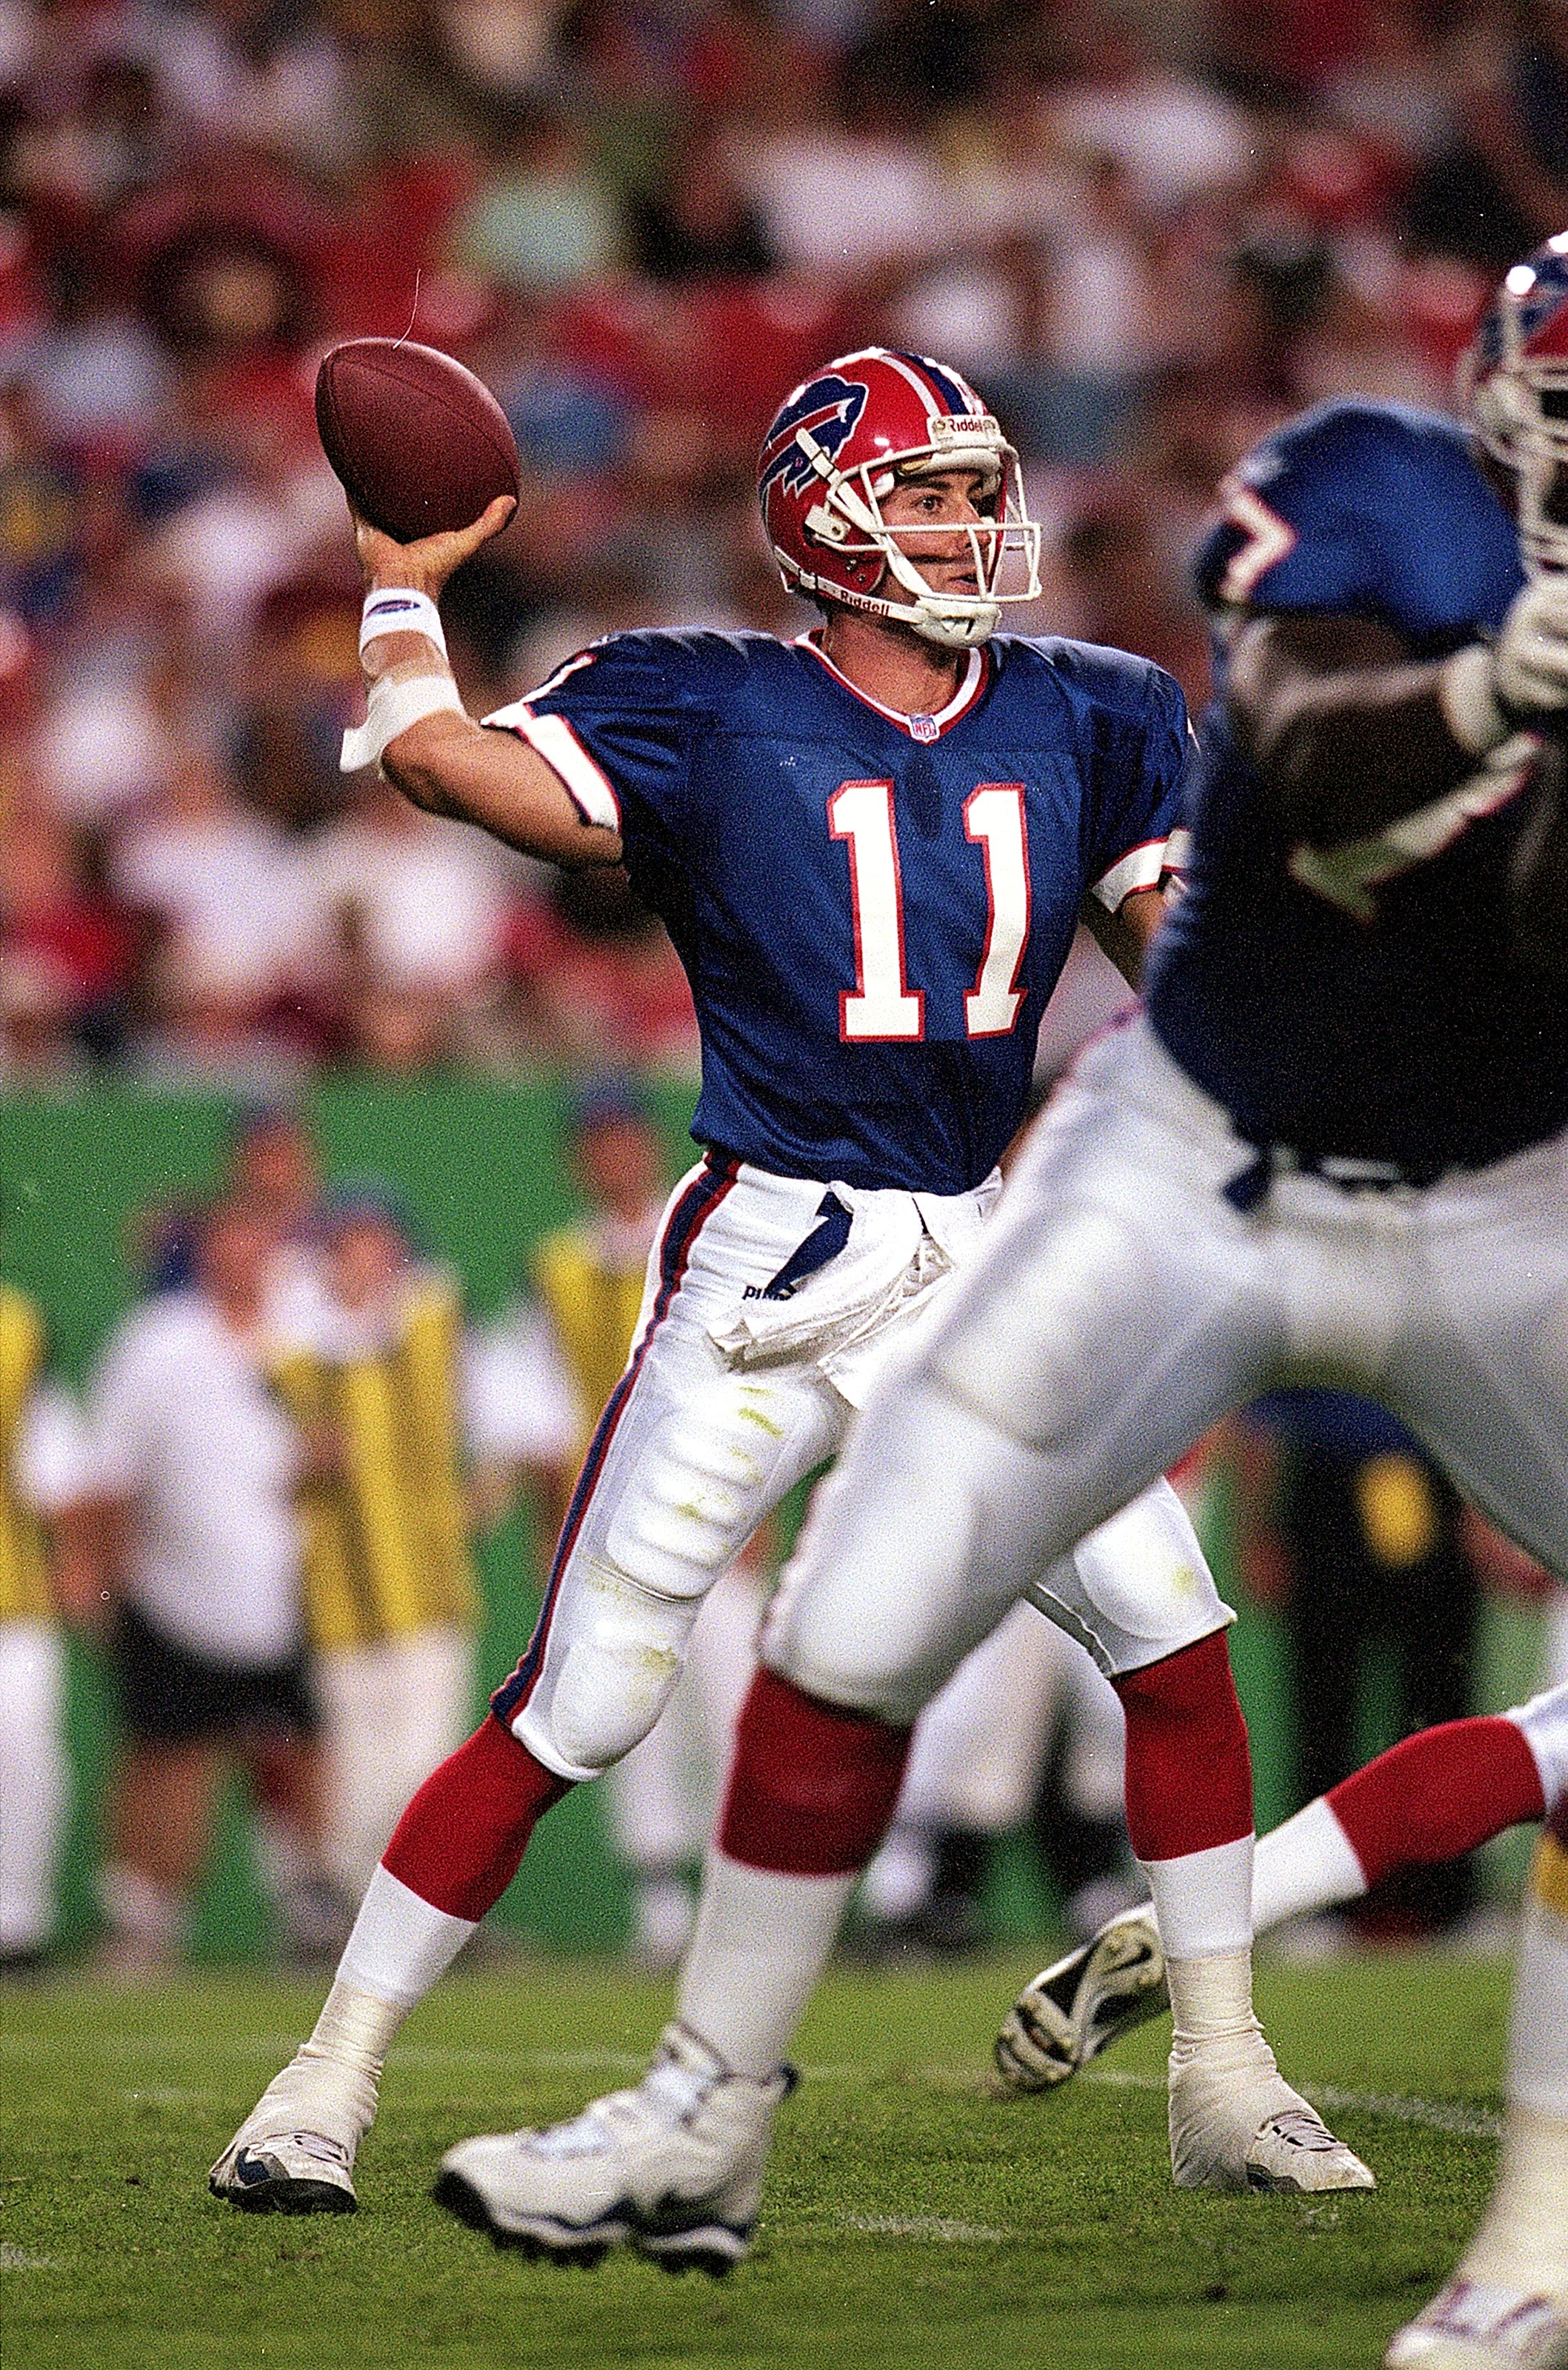 20 Aug 1999:  Rob Johnson #11 of the Buffalo Bills moves back to throw the ball during a game against the Washington Redskins at the Redskins Stadium in Landover, Maryland. The Redskins defeated the Bills 20-19. Mandatory Credit: Doug Pensinger  /Allsport